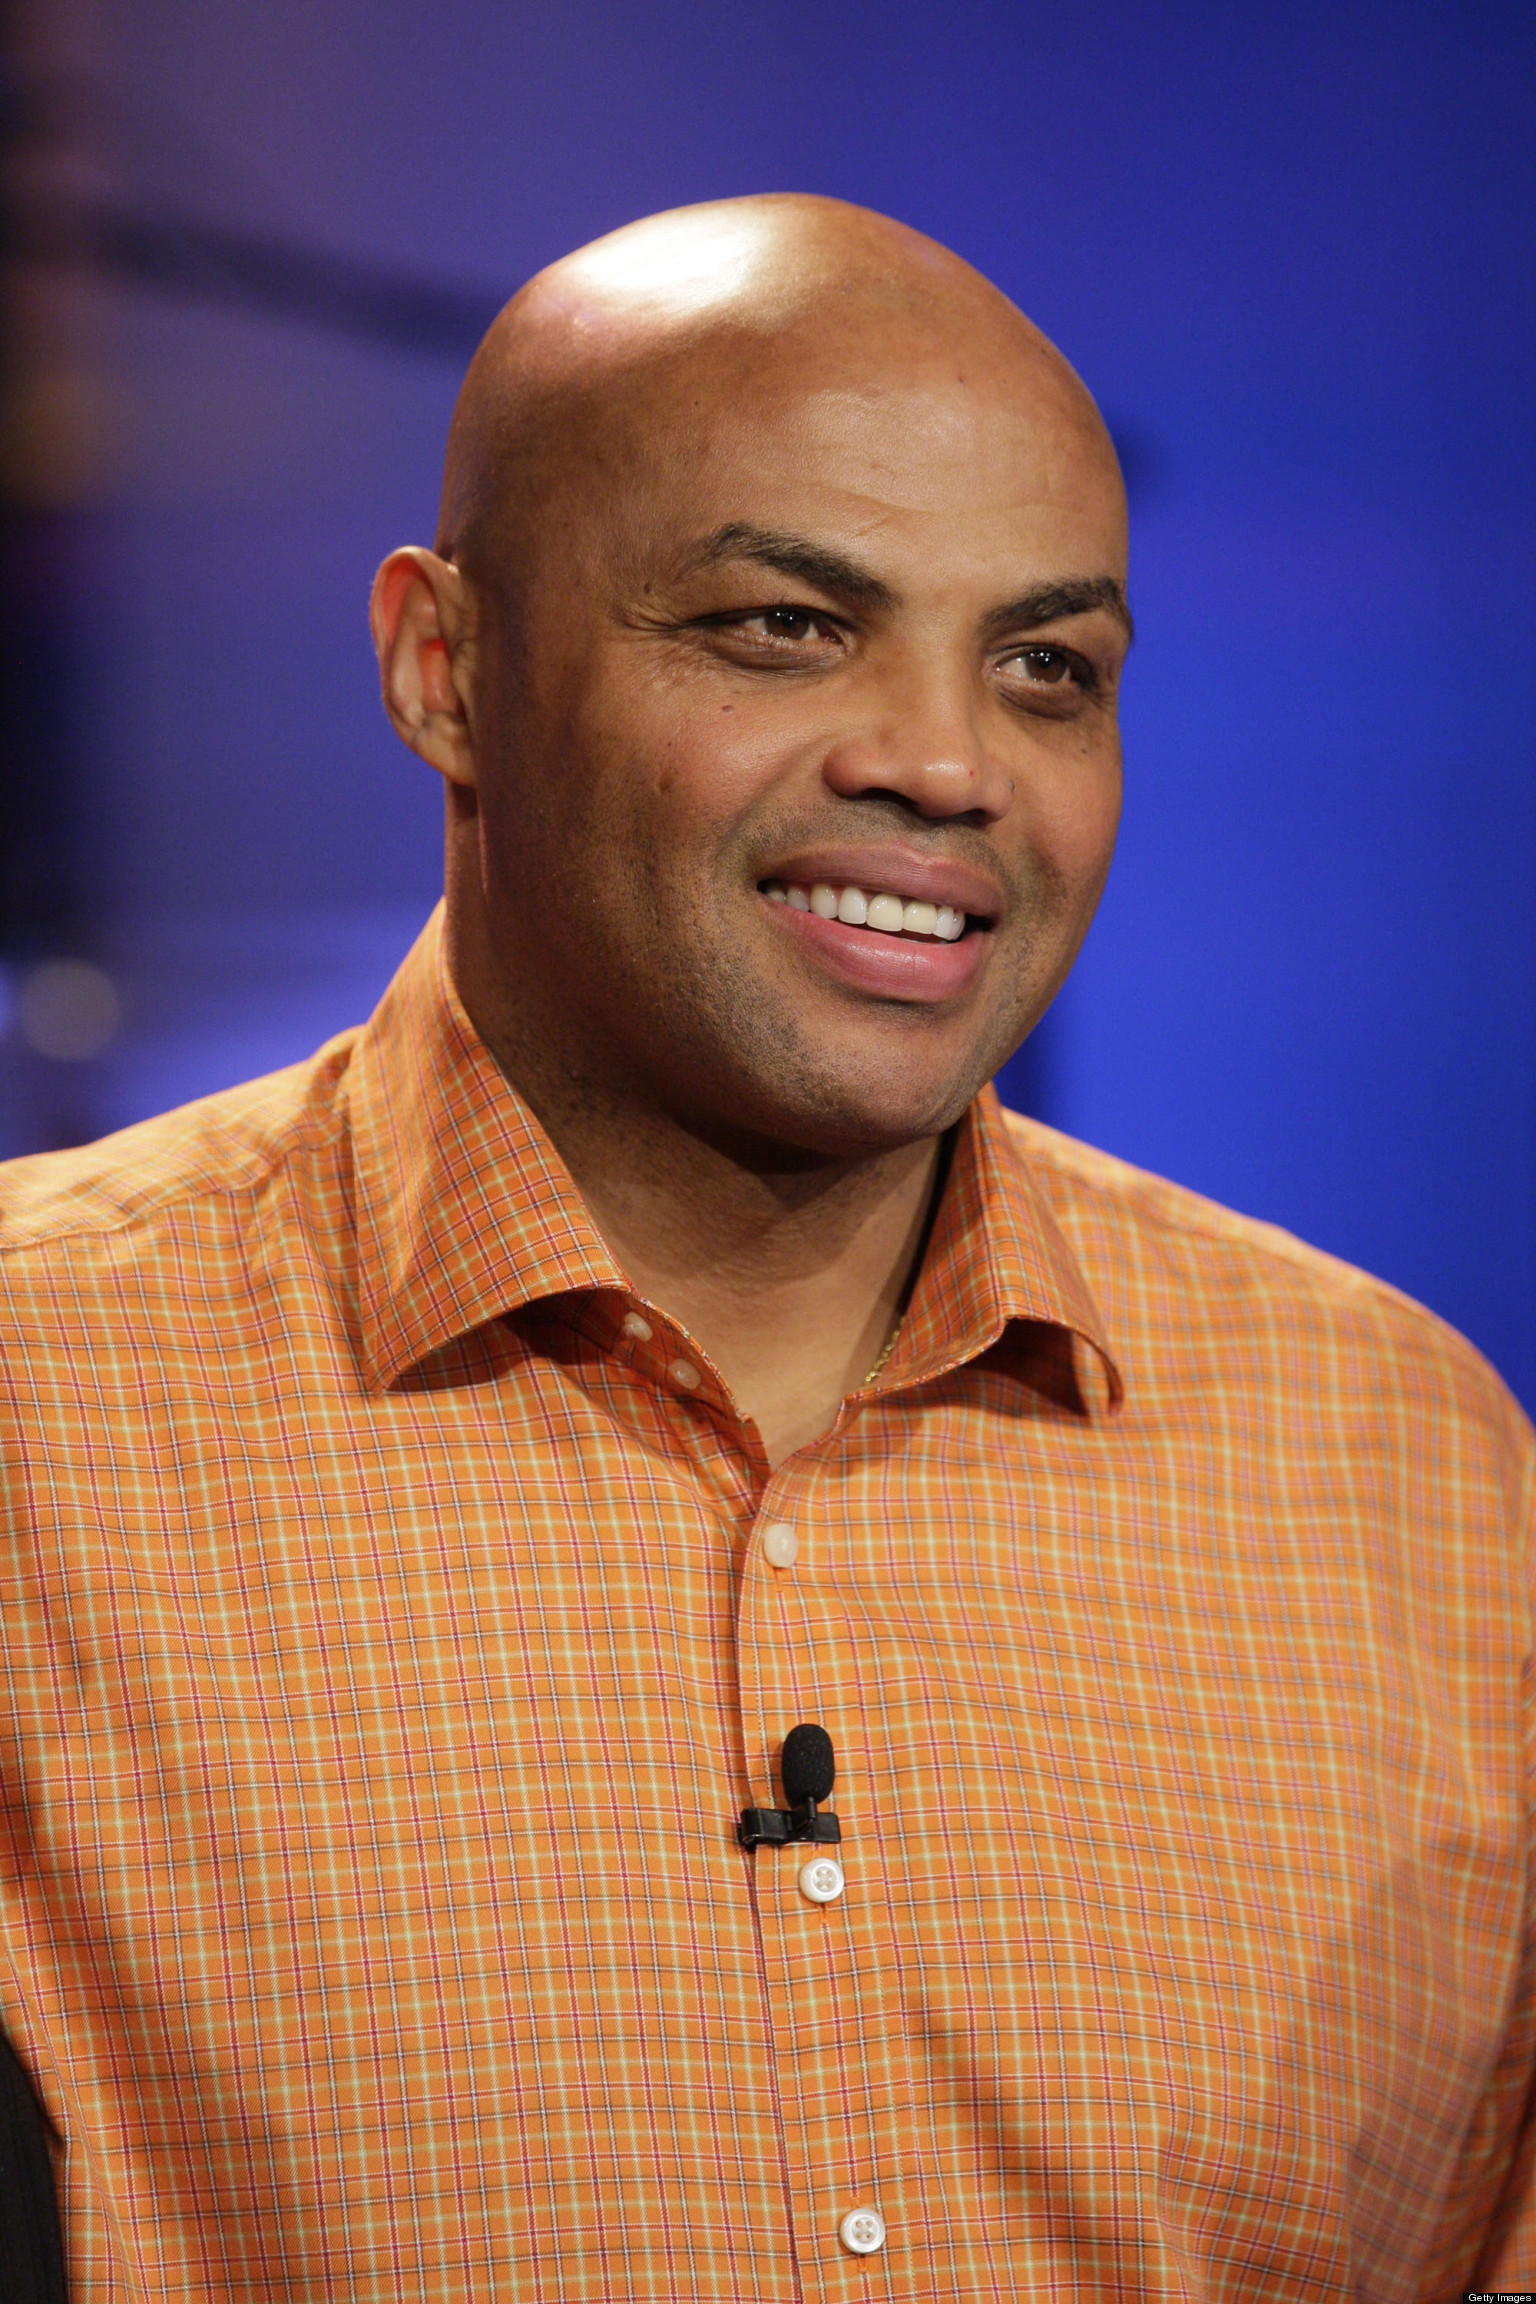 charles barkley - photo #36